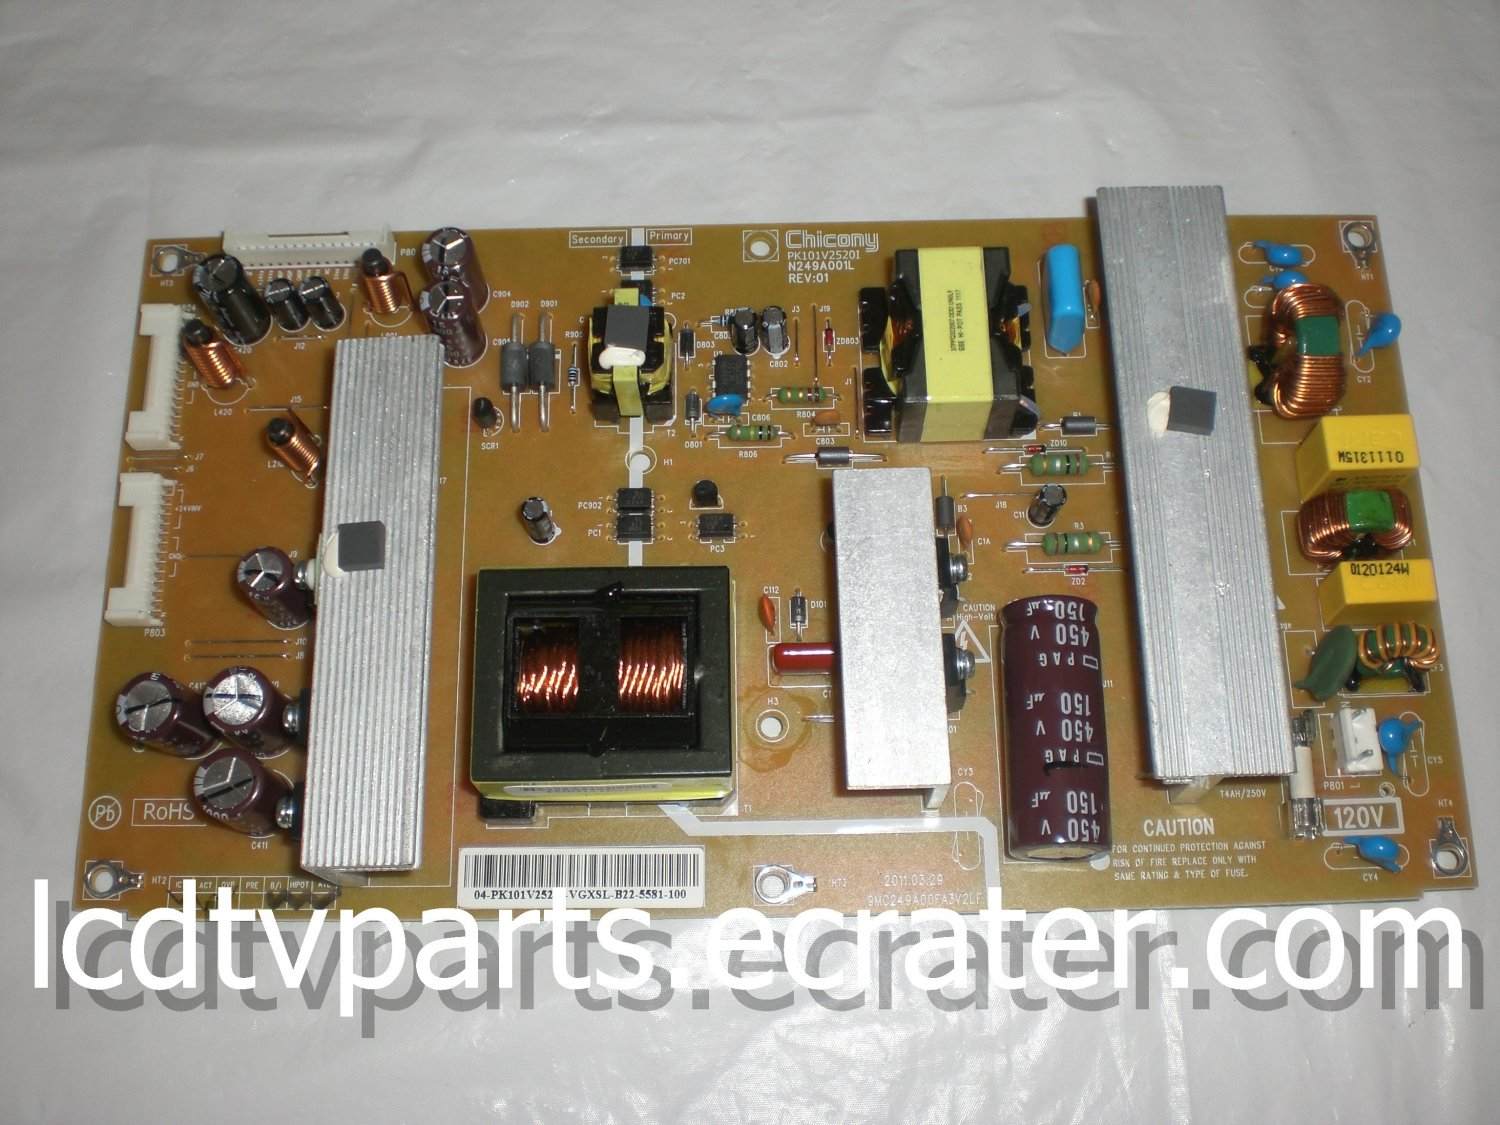 75024143, PK101V2520I, N249A001L REV:01, 9MC249A00FA3V2LF, Power Supply for TOSHIBA 46G310U